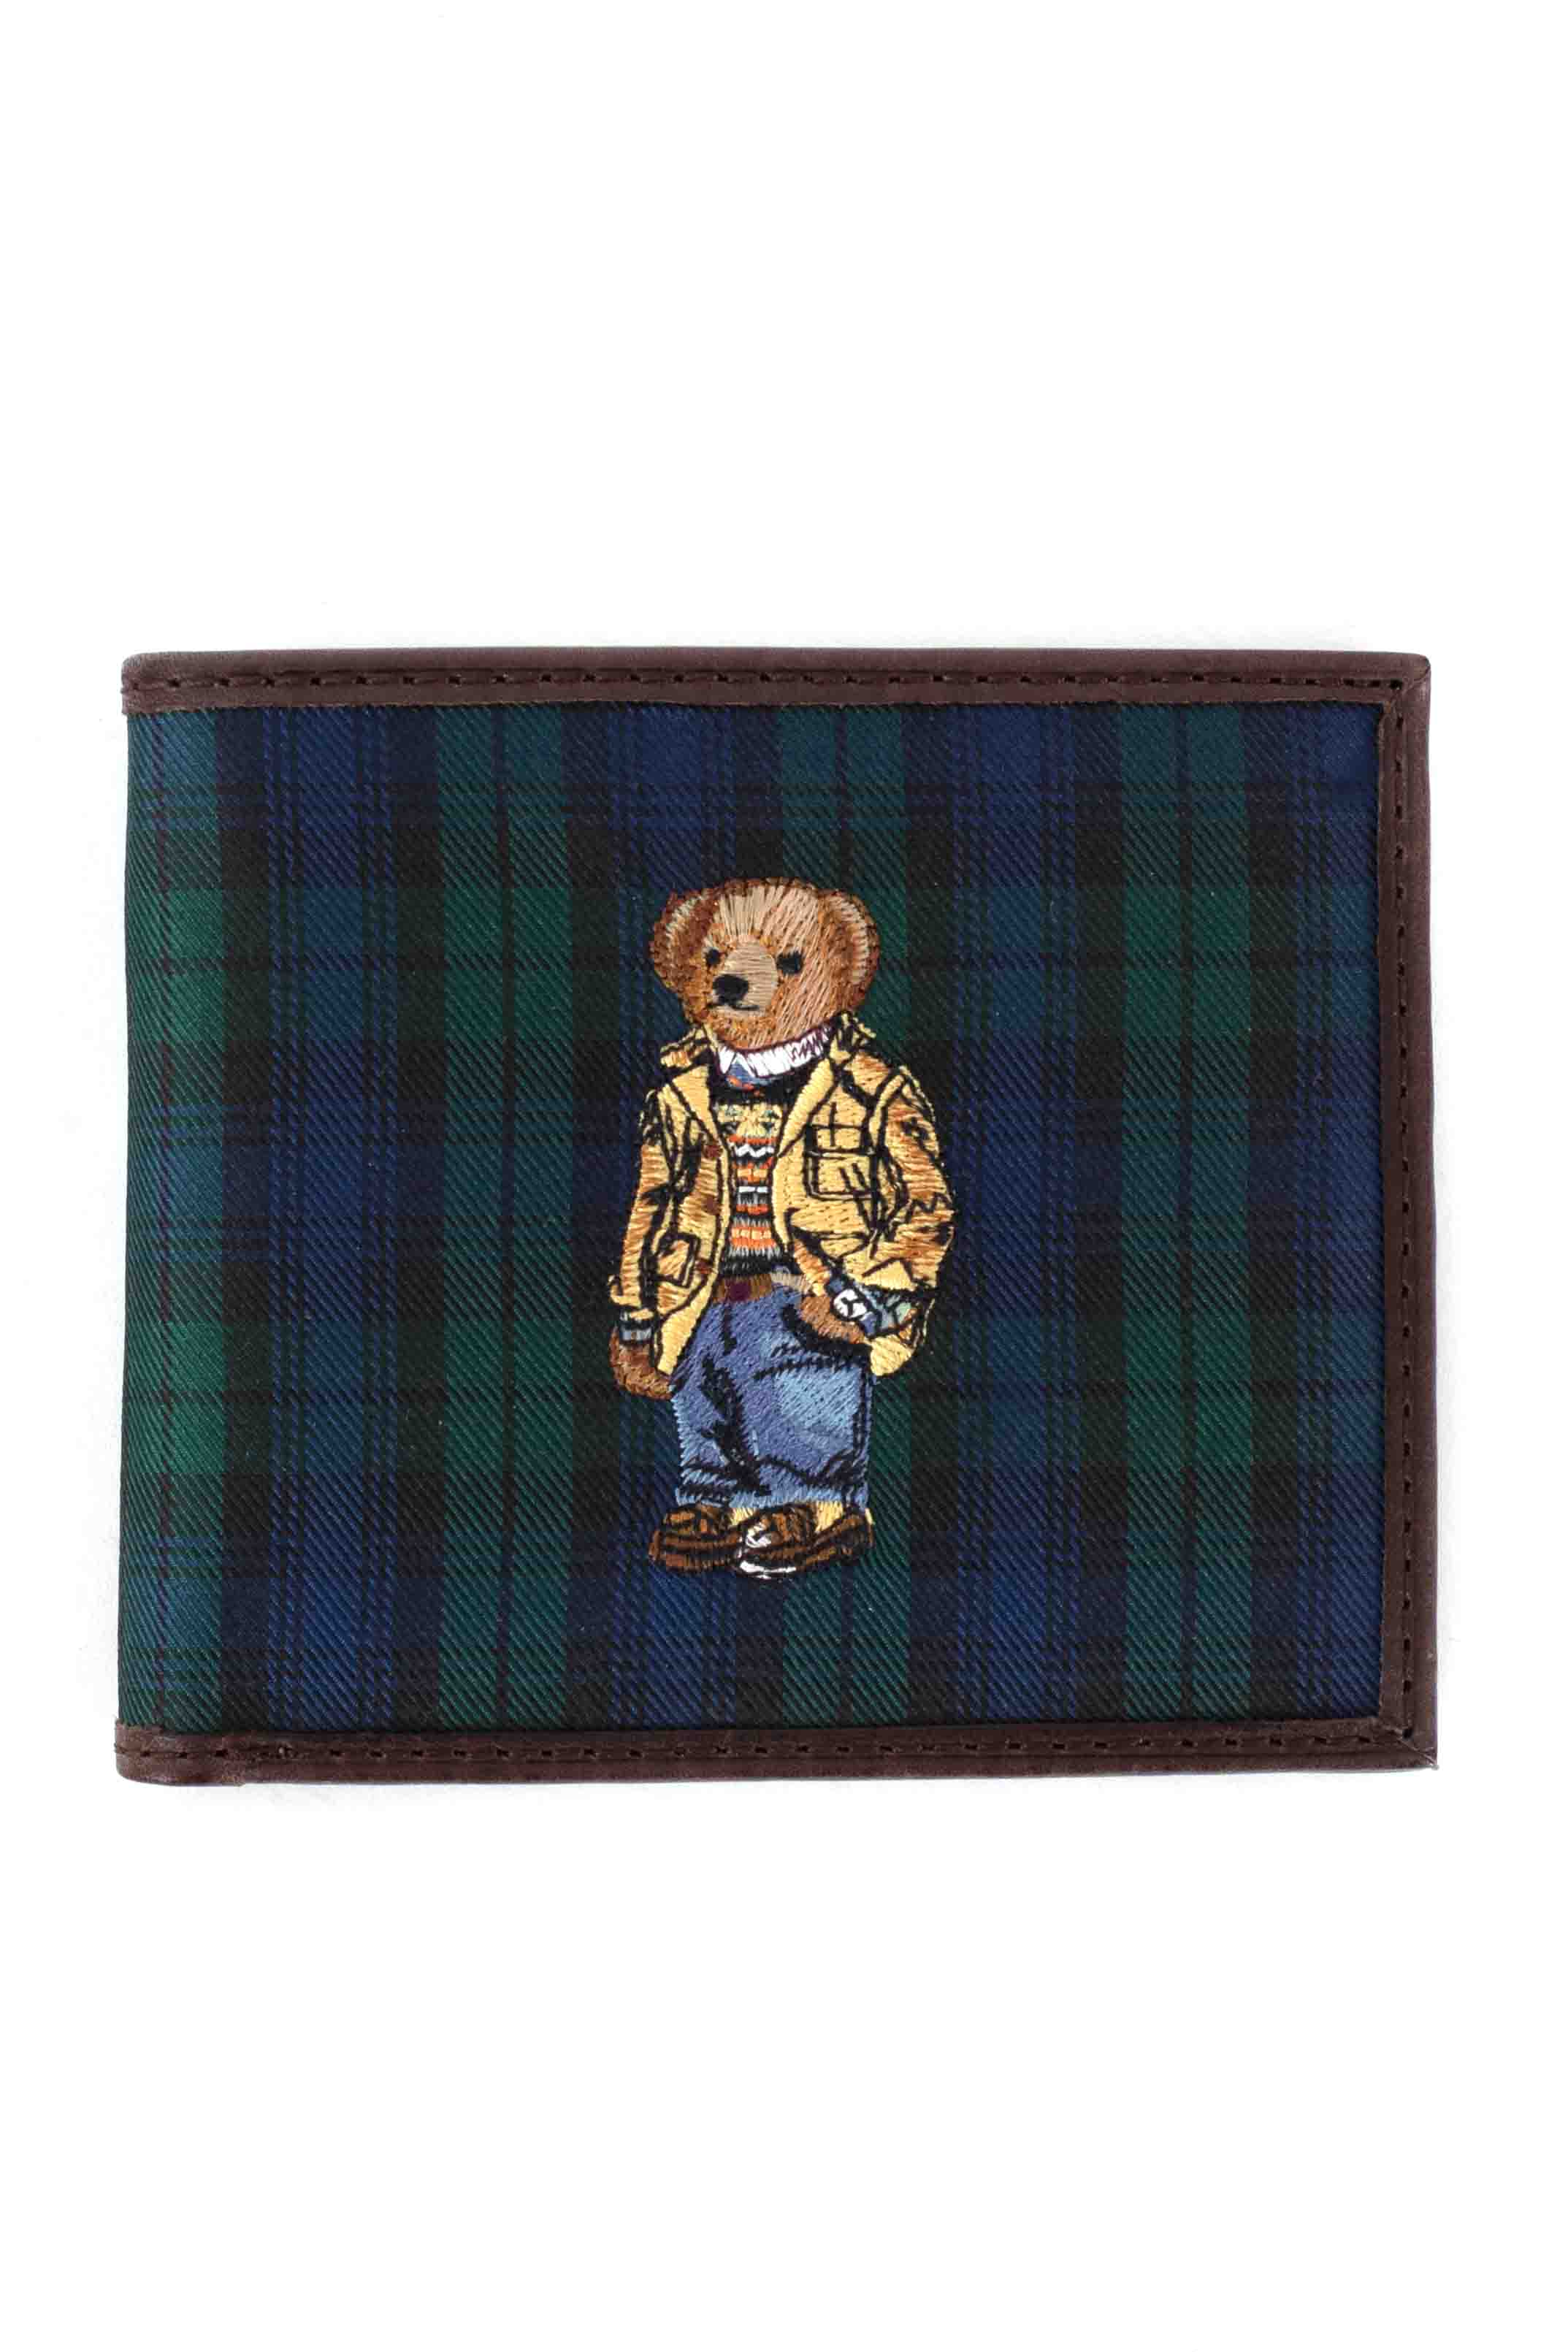 Polo Bear Coat Billfold Wallet - Navy